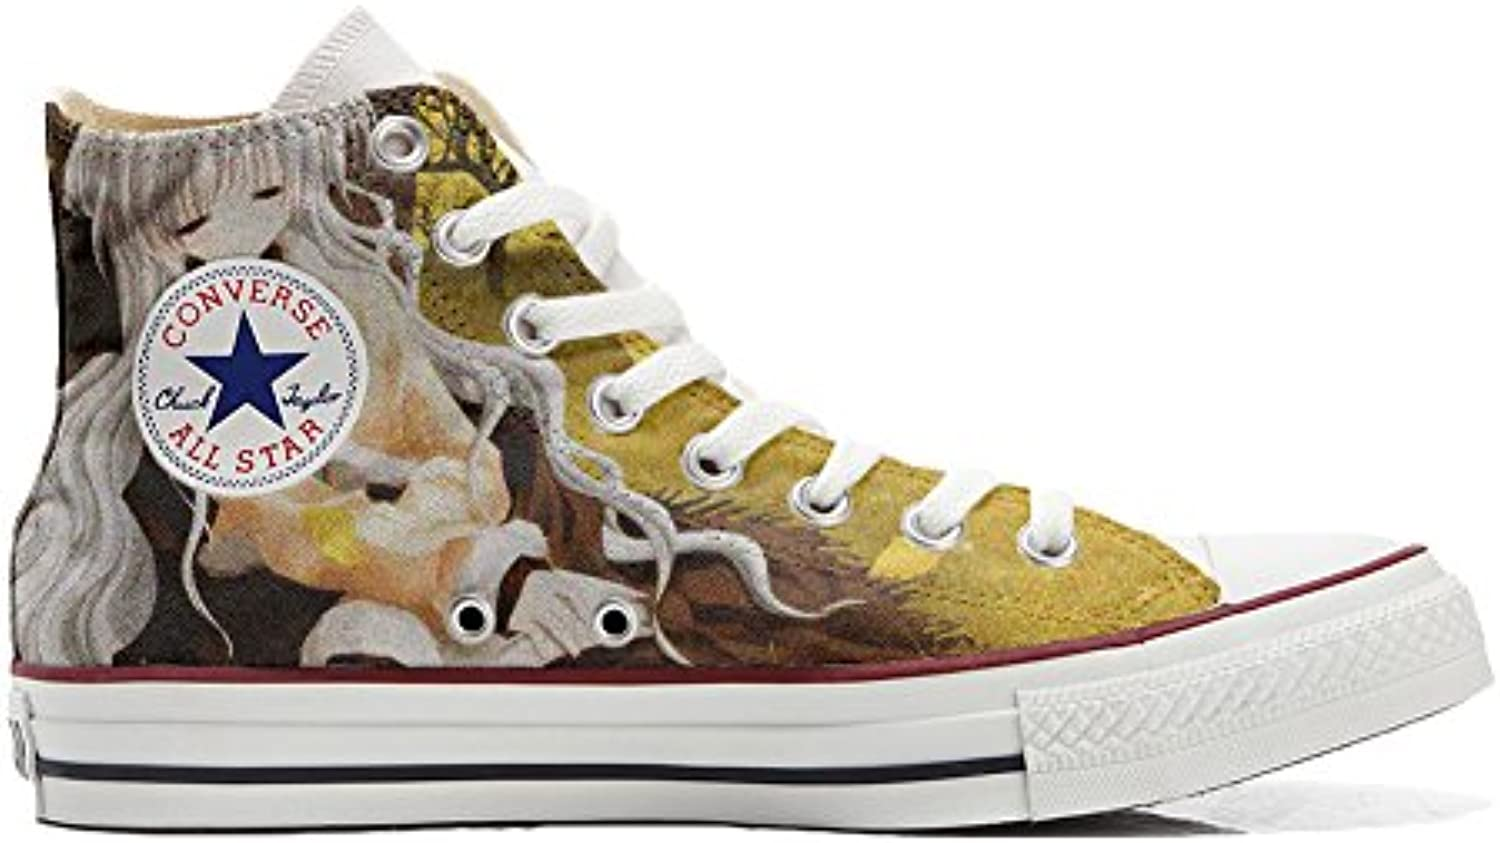 Converse All Star Zapatos Personalizados (Producto Handmade) (Producto Handmade) Abstract Art Size 34 EU -